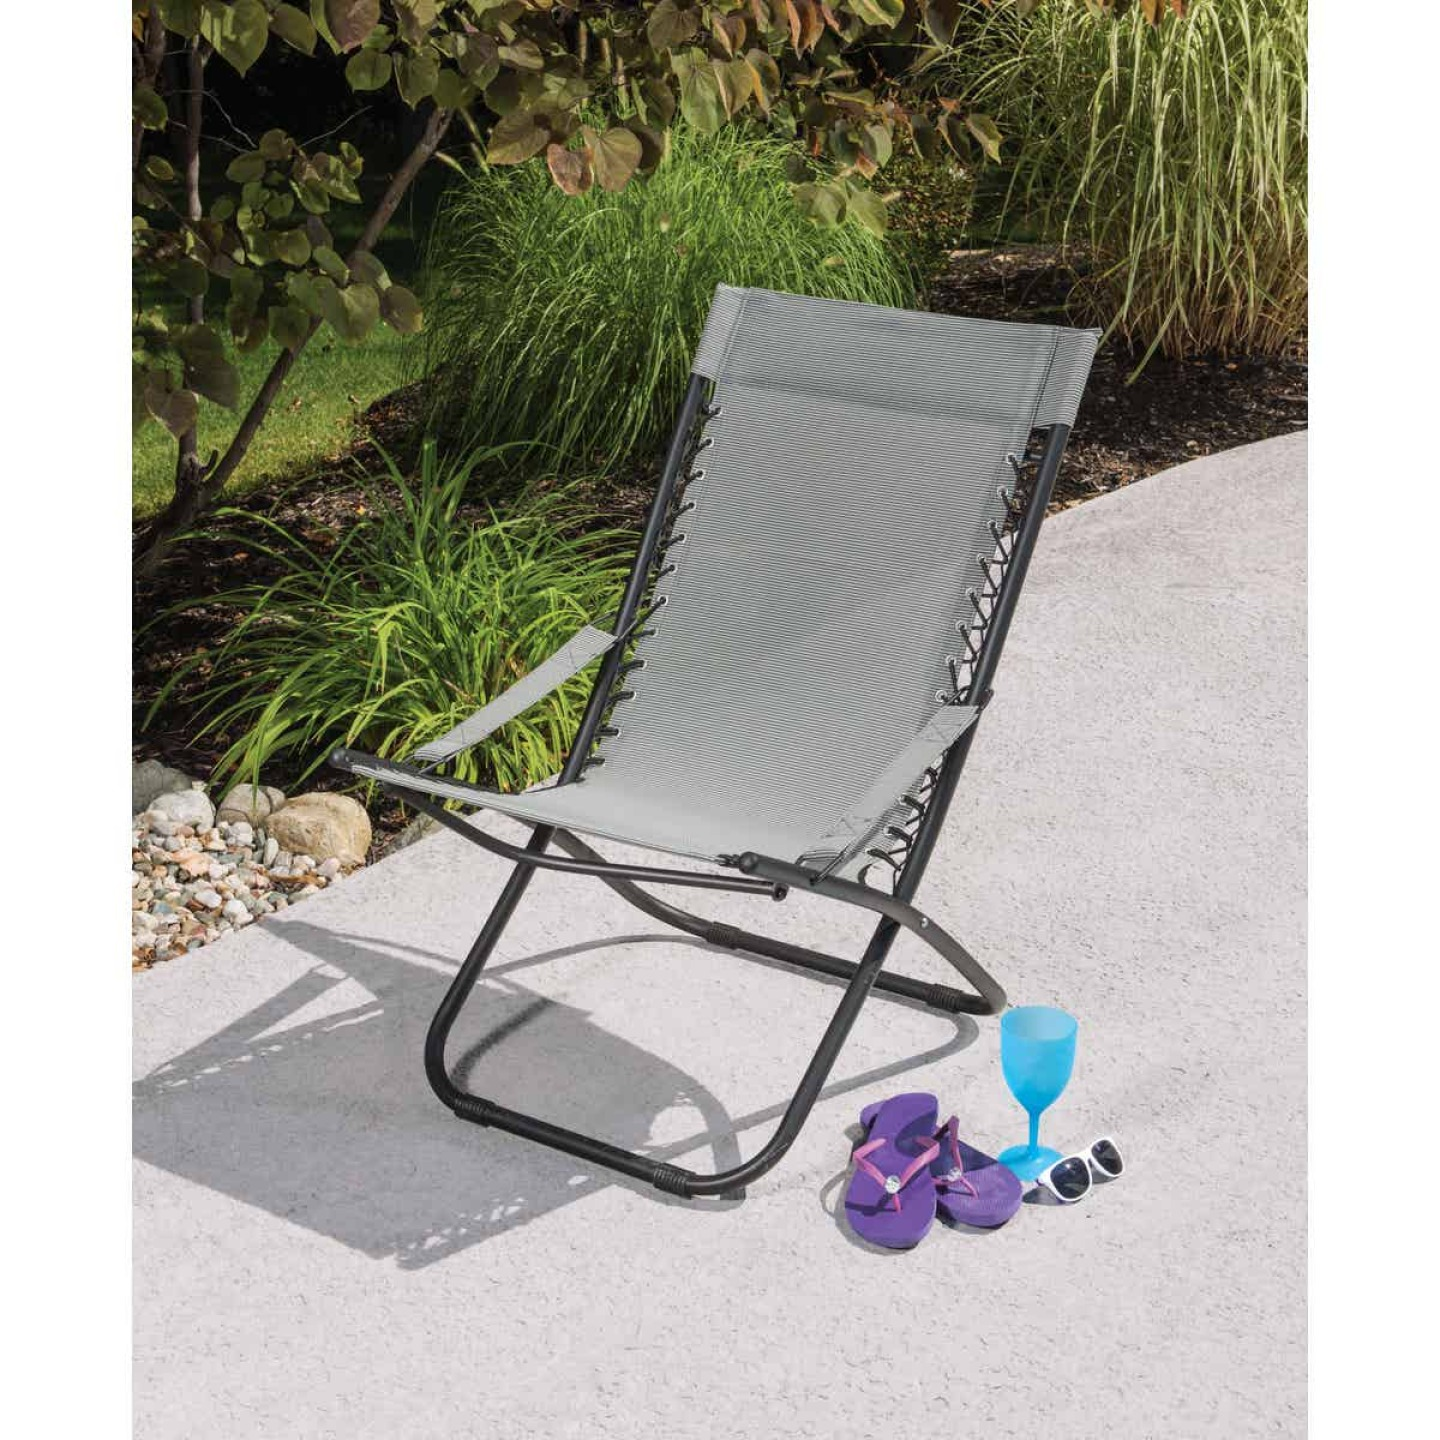 Outdoor Expressions Seville Gray Hammock Chair Image 3